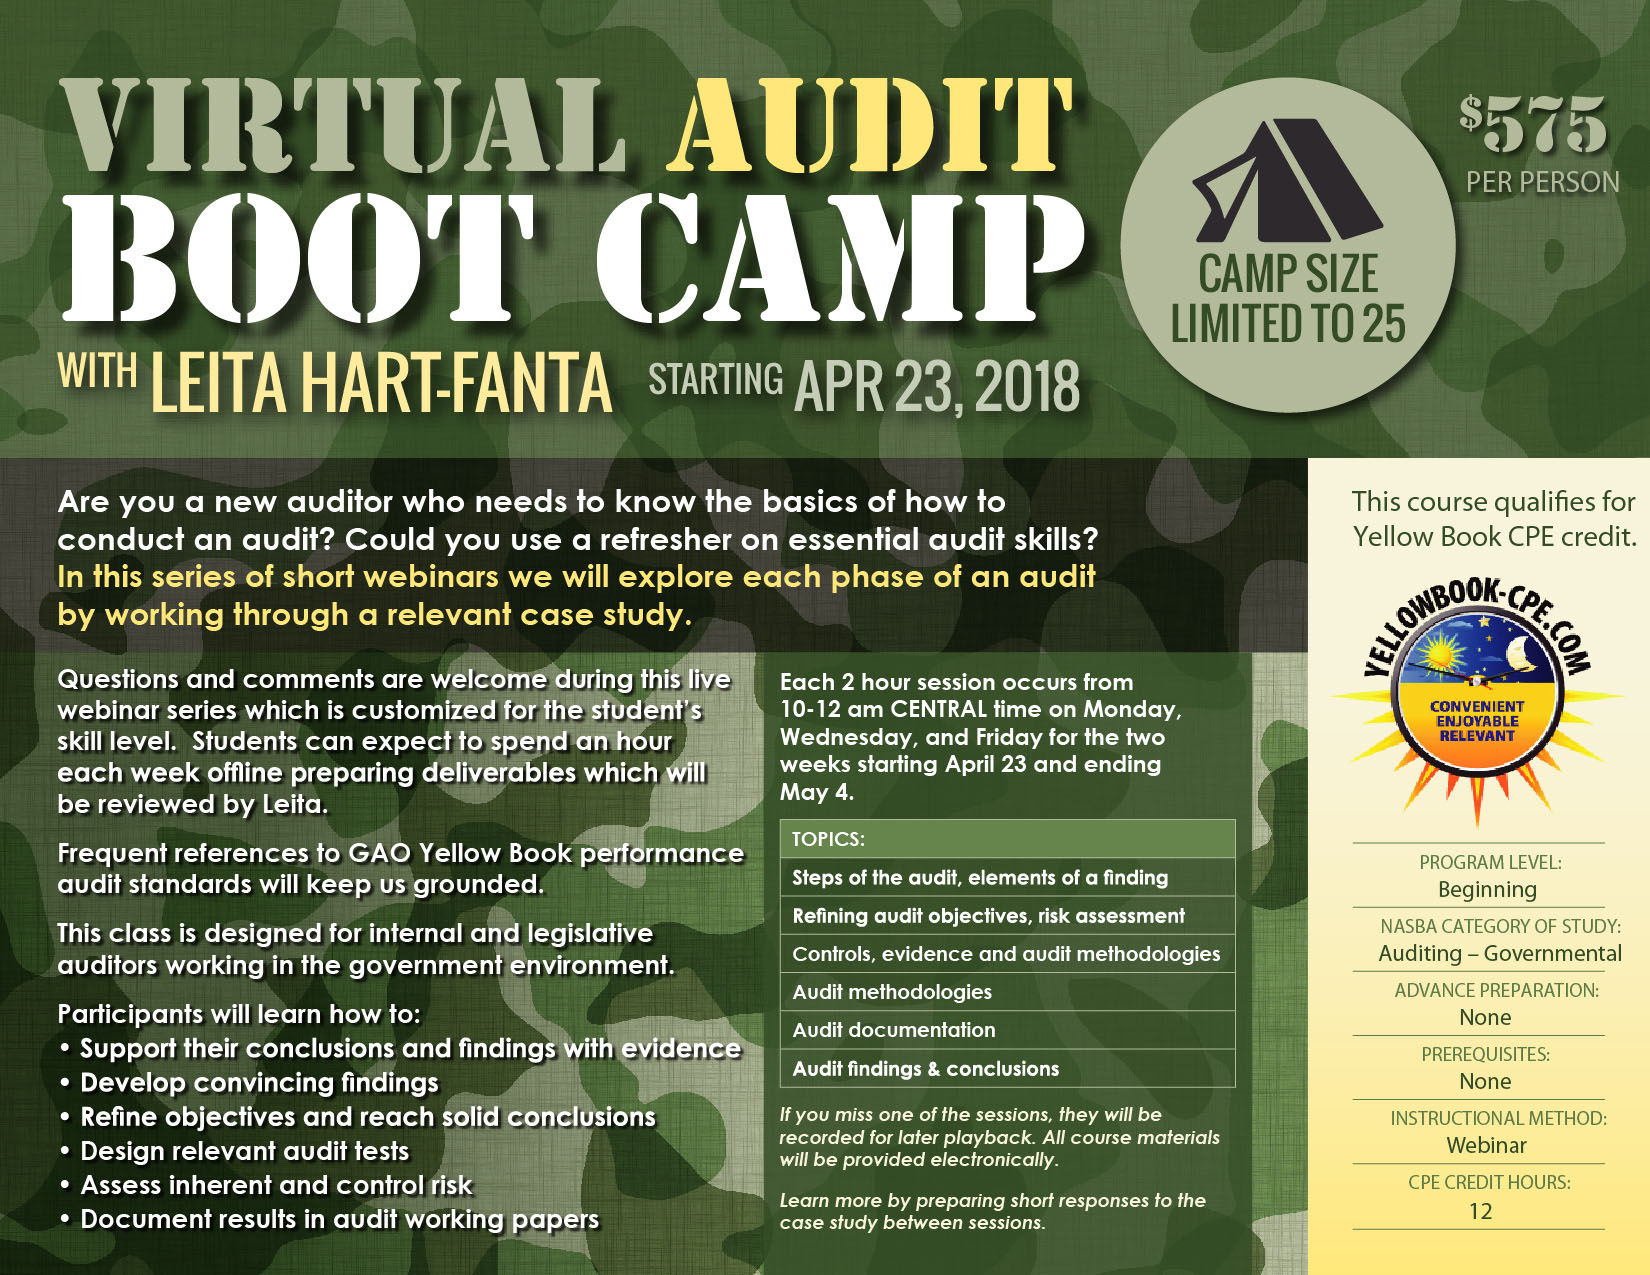 Virtual Audit Boot Camp